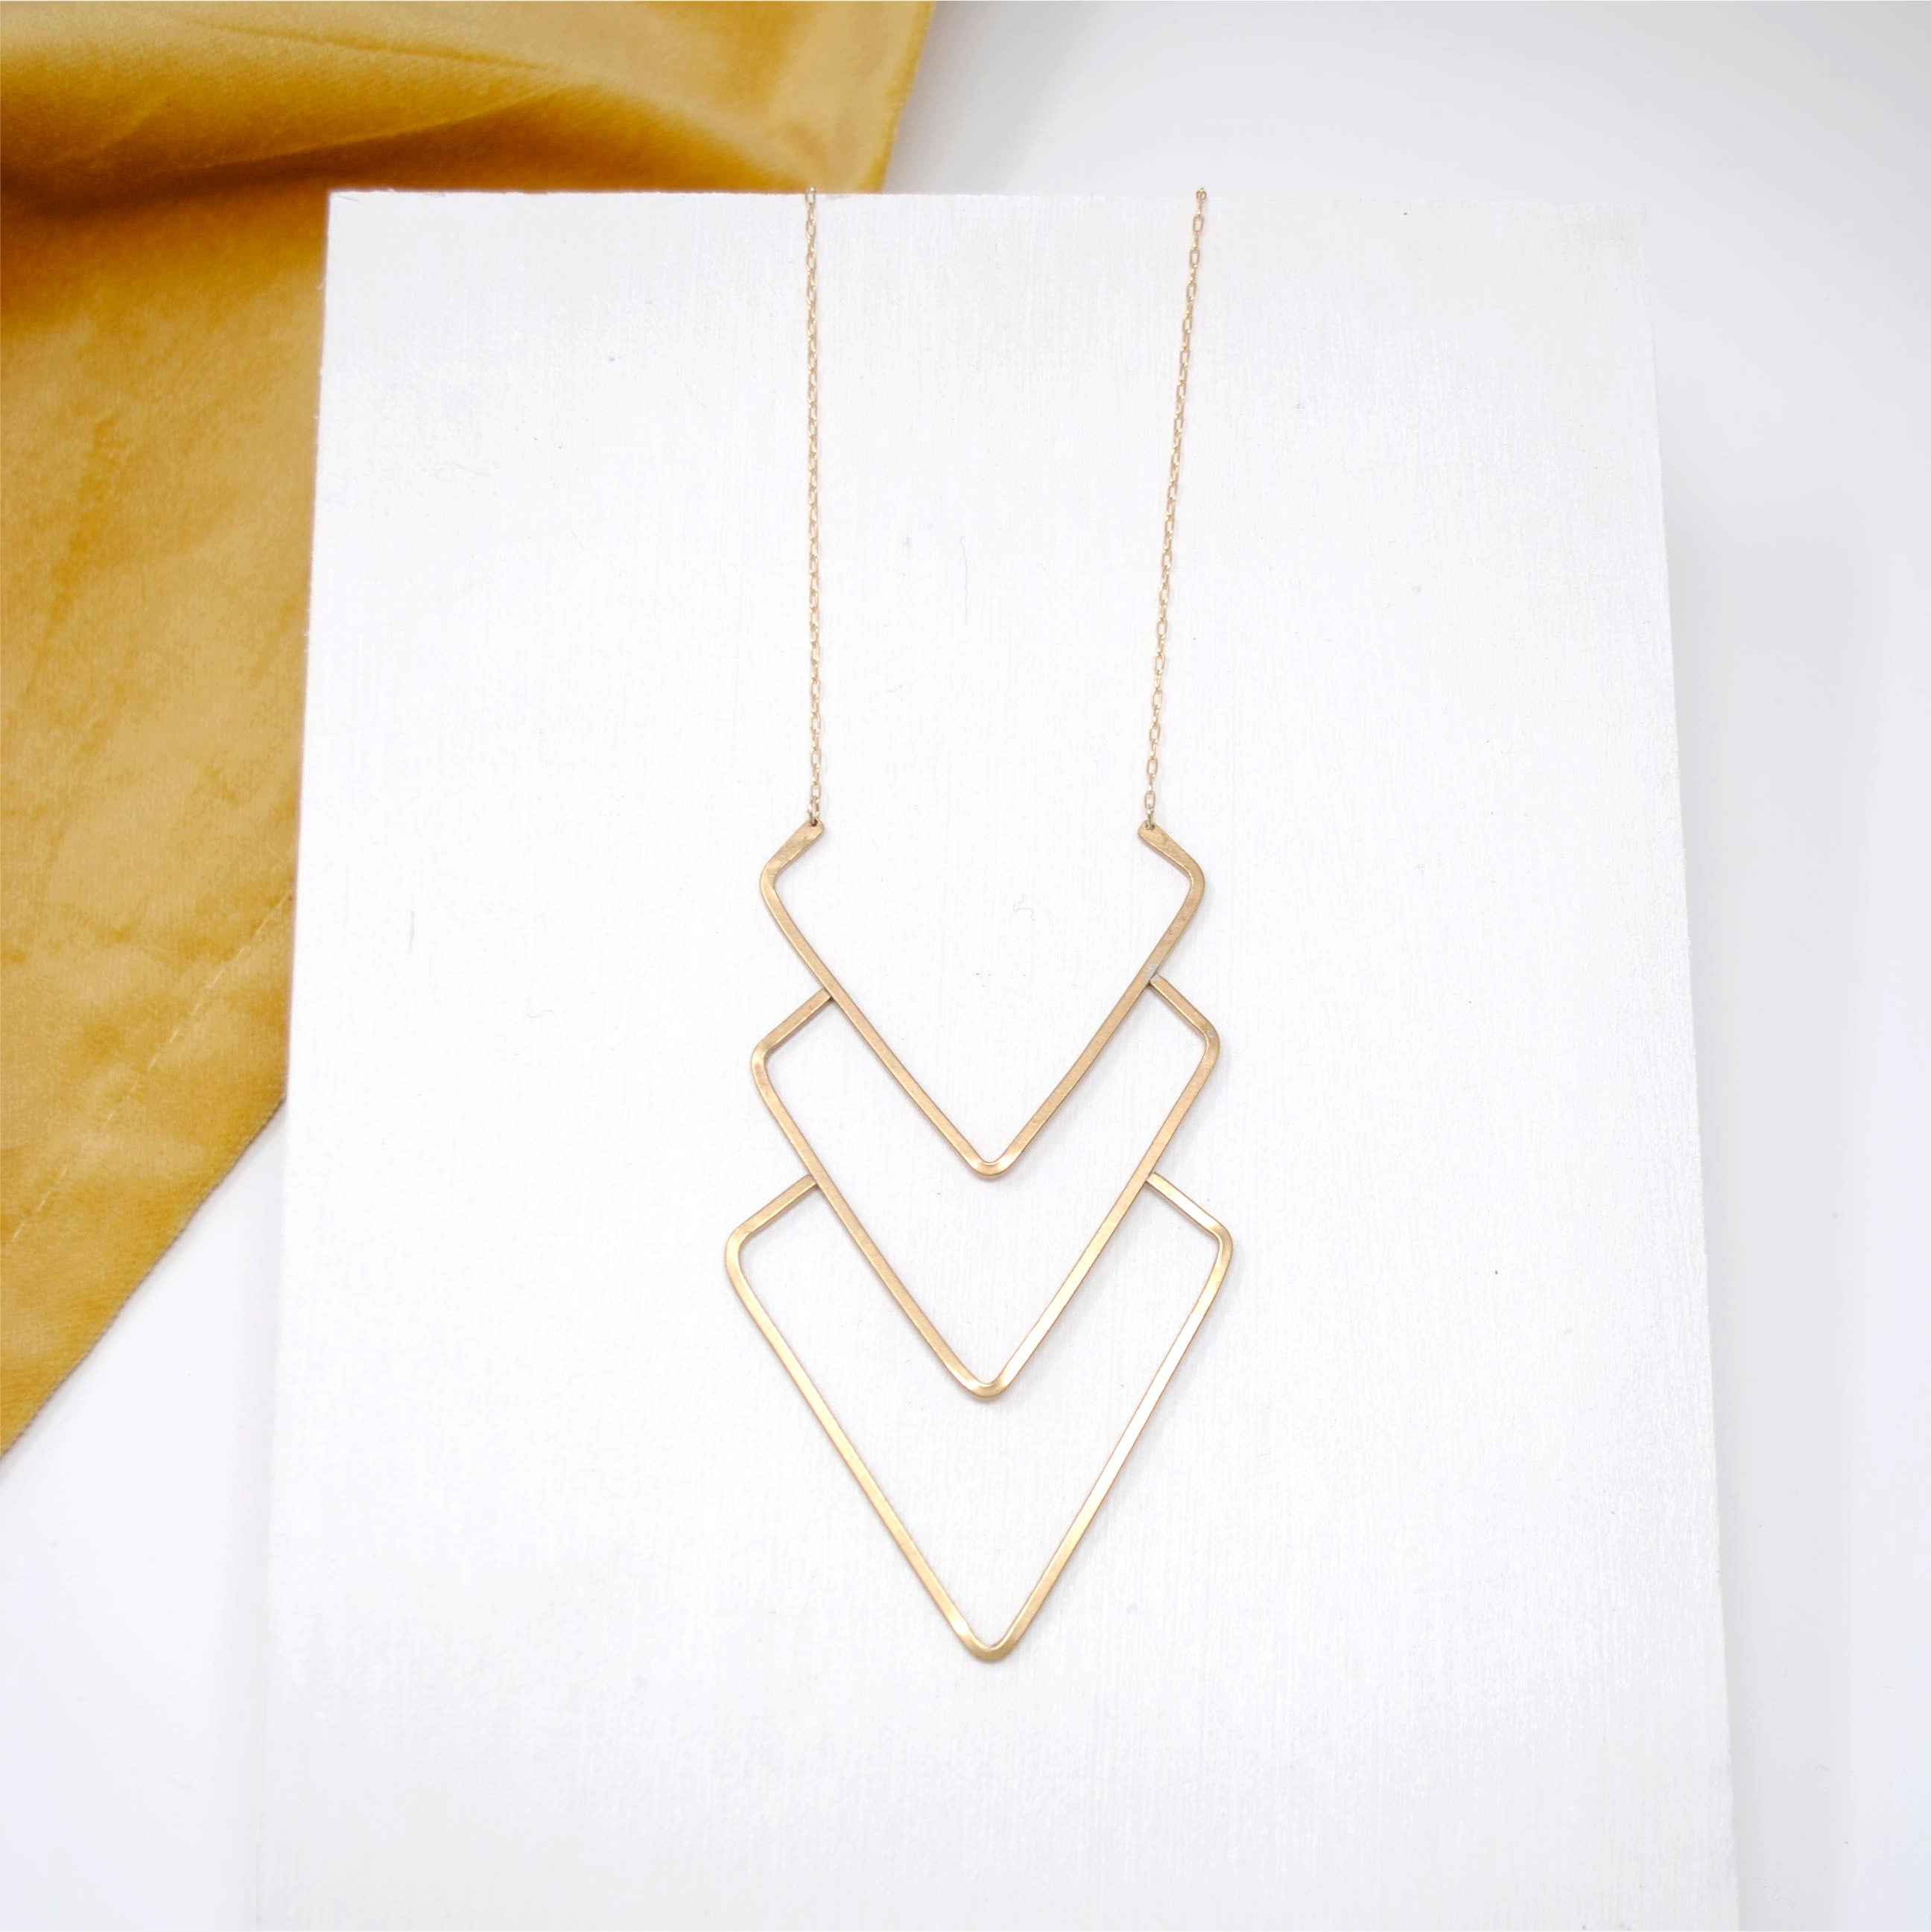 Daedal Lifted Layered Necklace